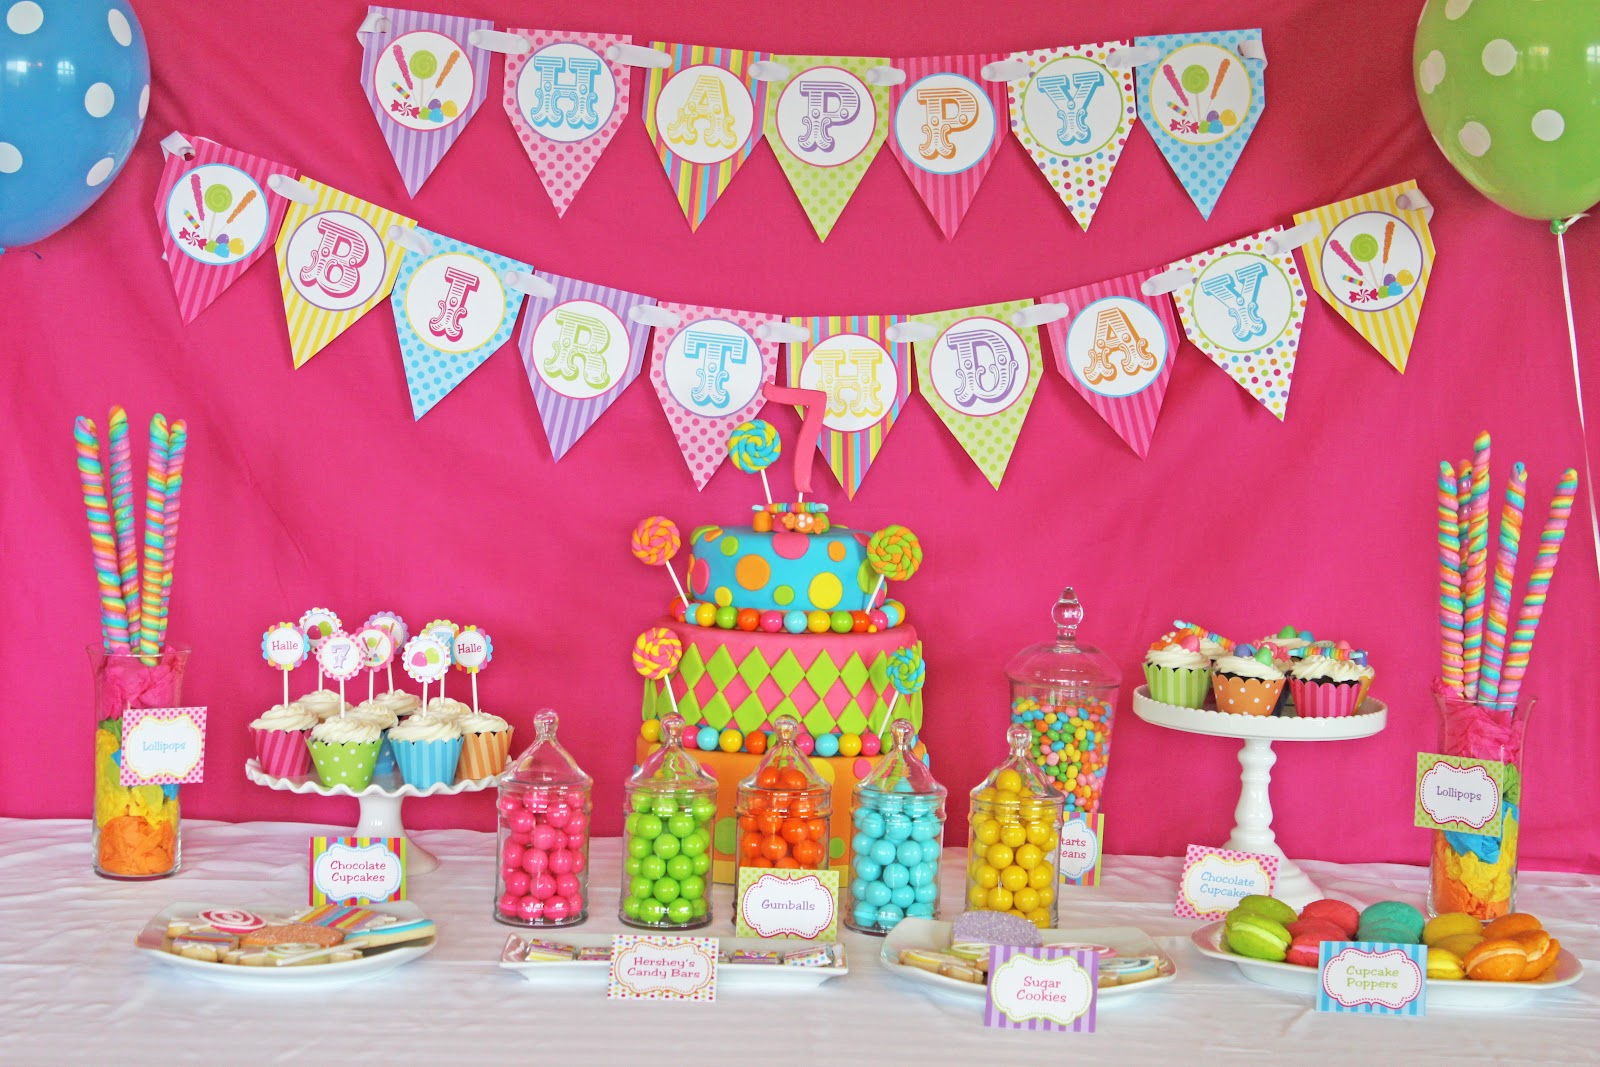 Halle's 7th Candy Shoppe Birthday Party